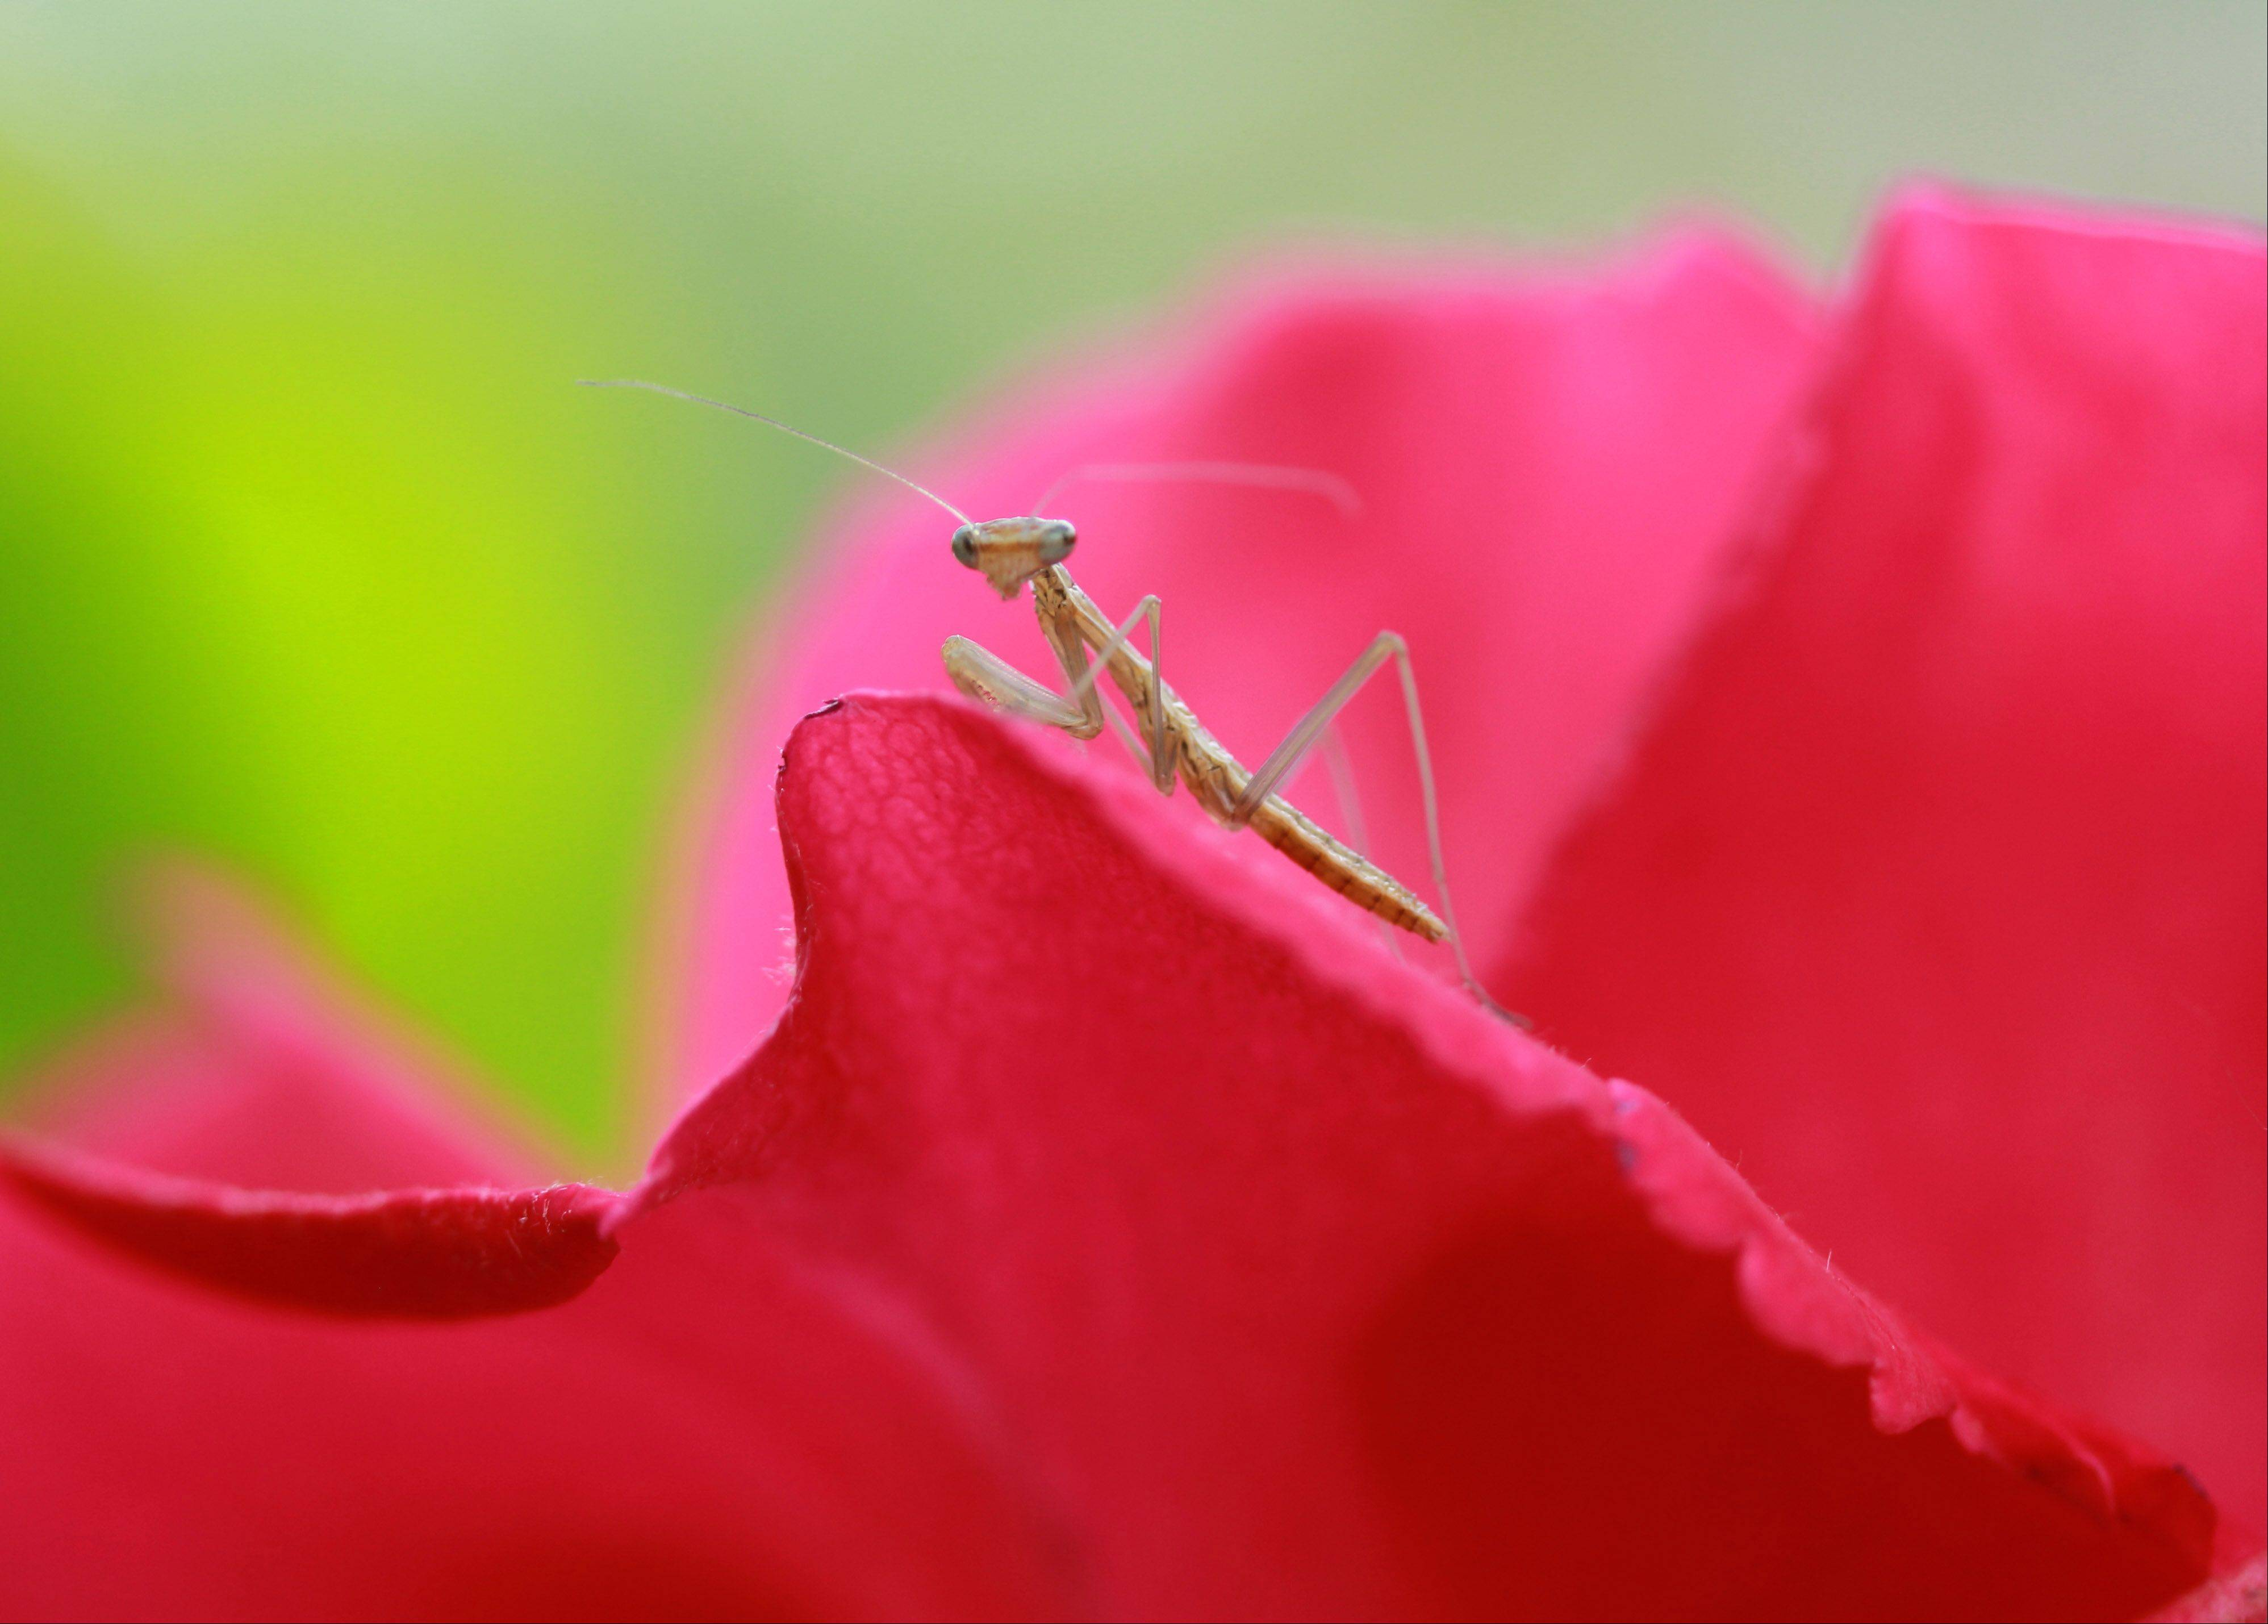 A praying mantis on a rose petal in Wildwood garden. This praying mantis, along with about 100 others, hatchedfrom a single pod.